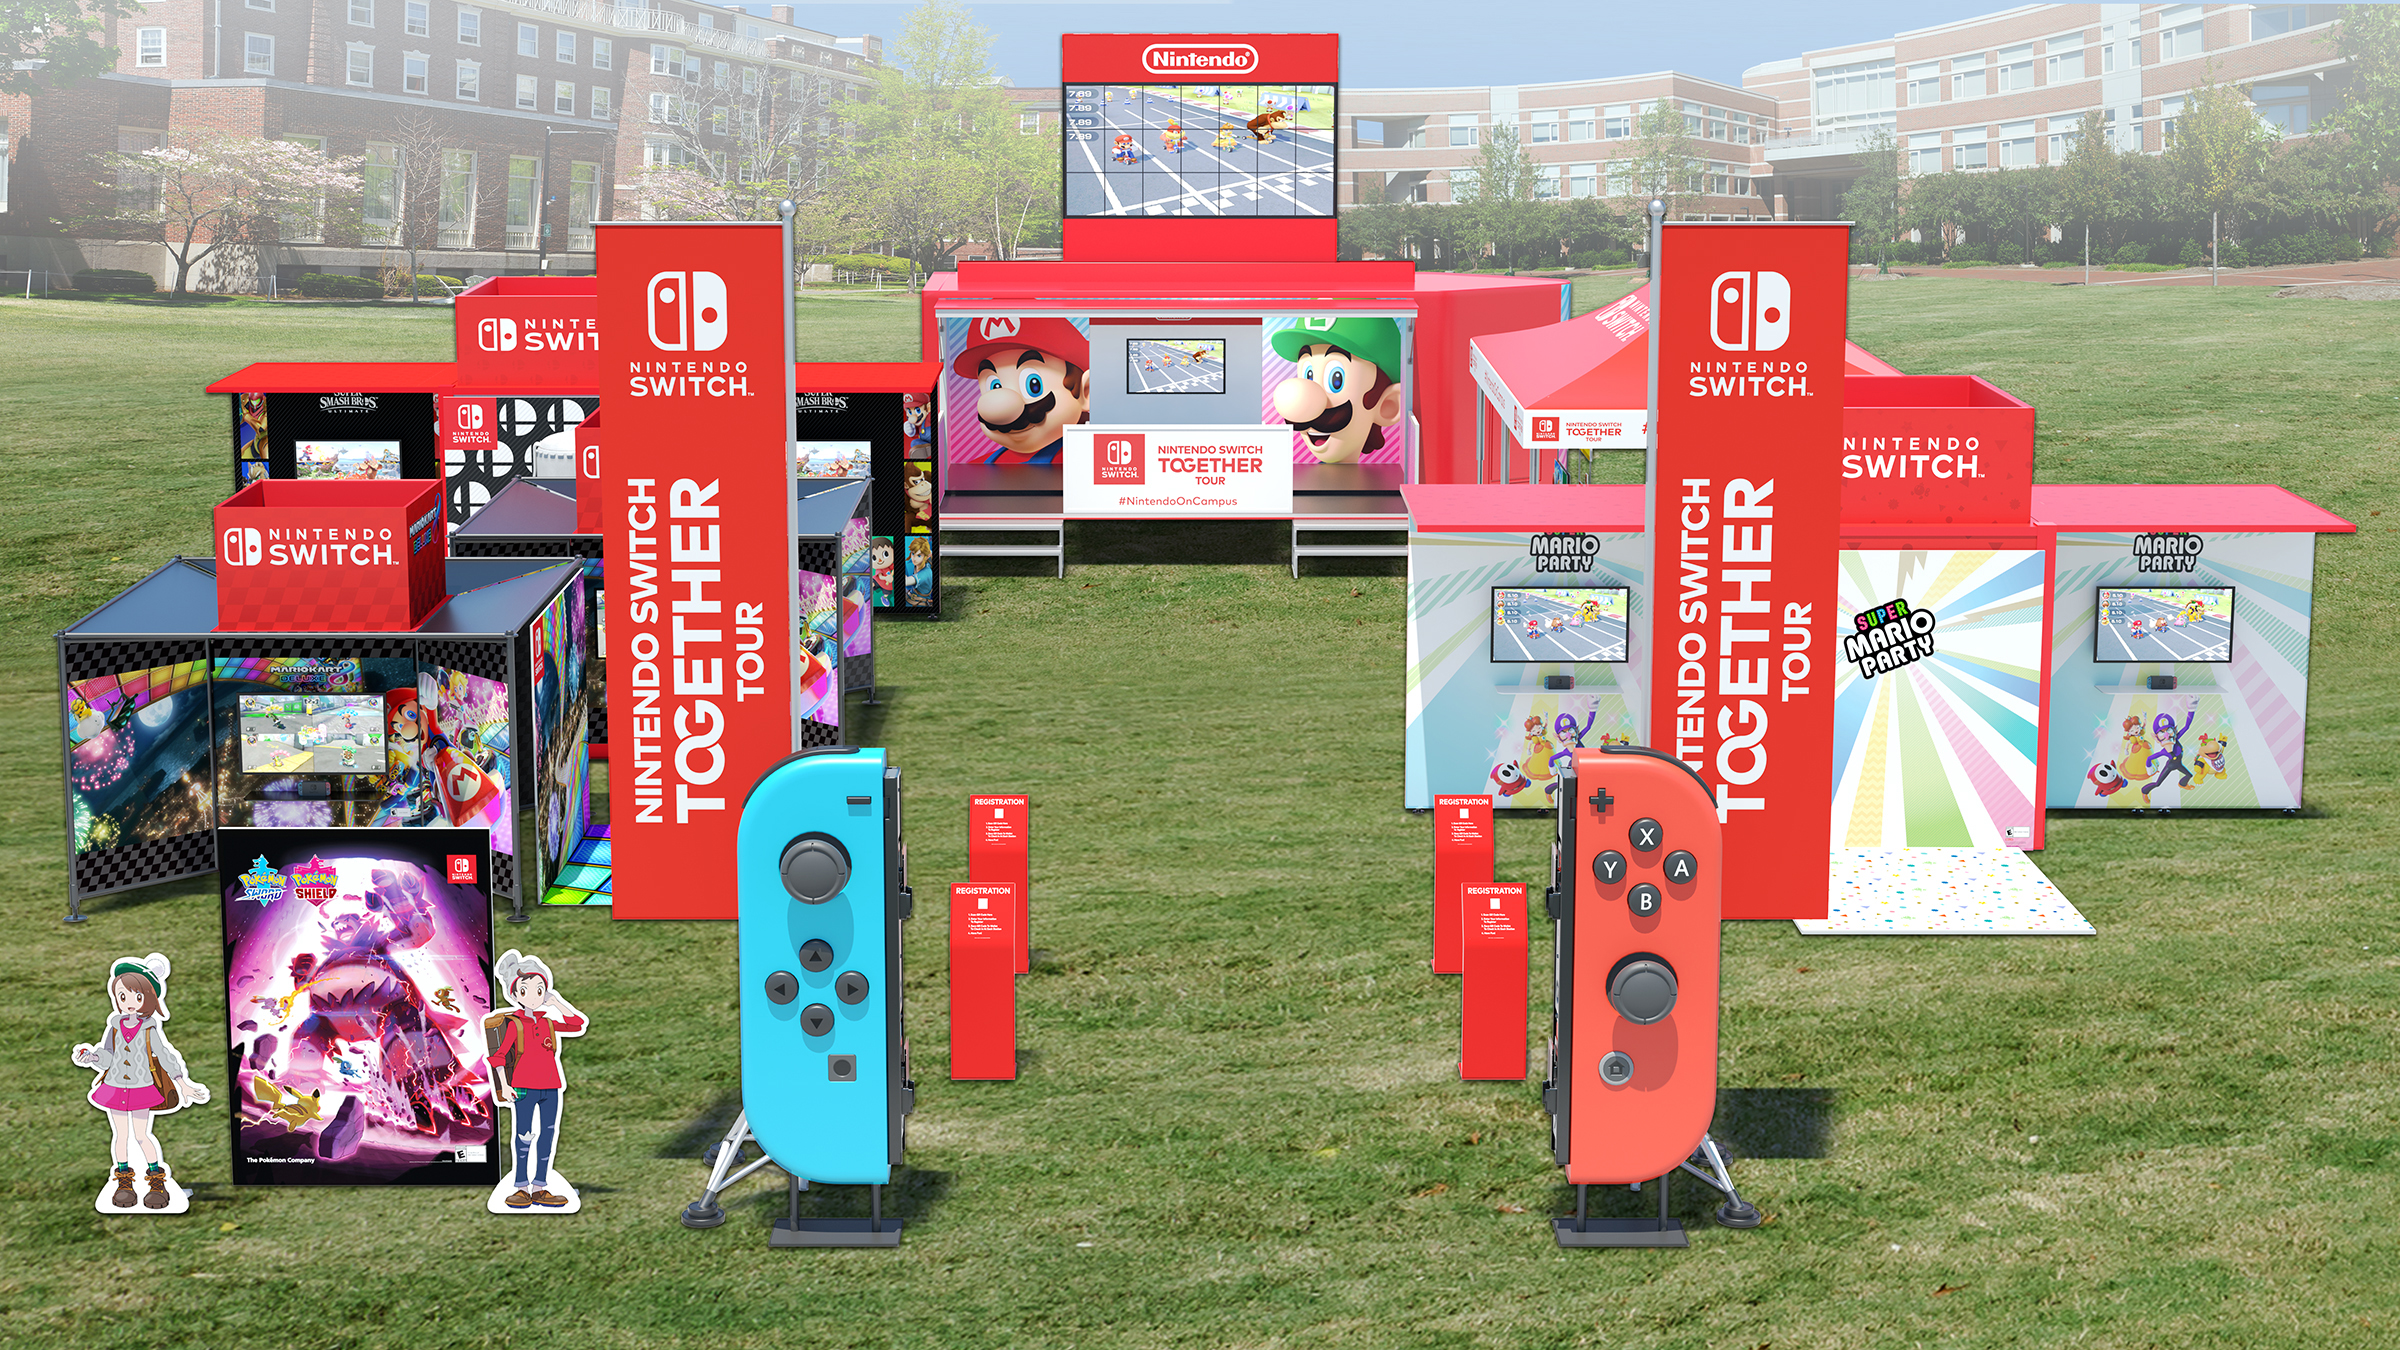 Nintendo is Bringing the Nintendo Switch to College Campuses